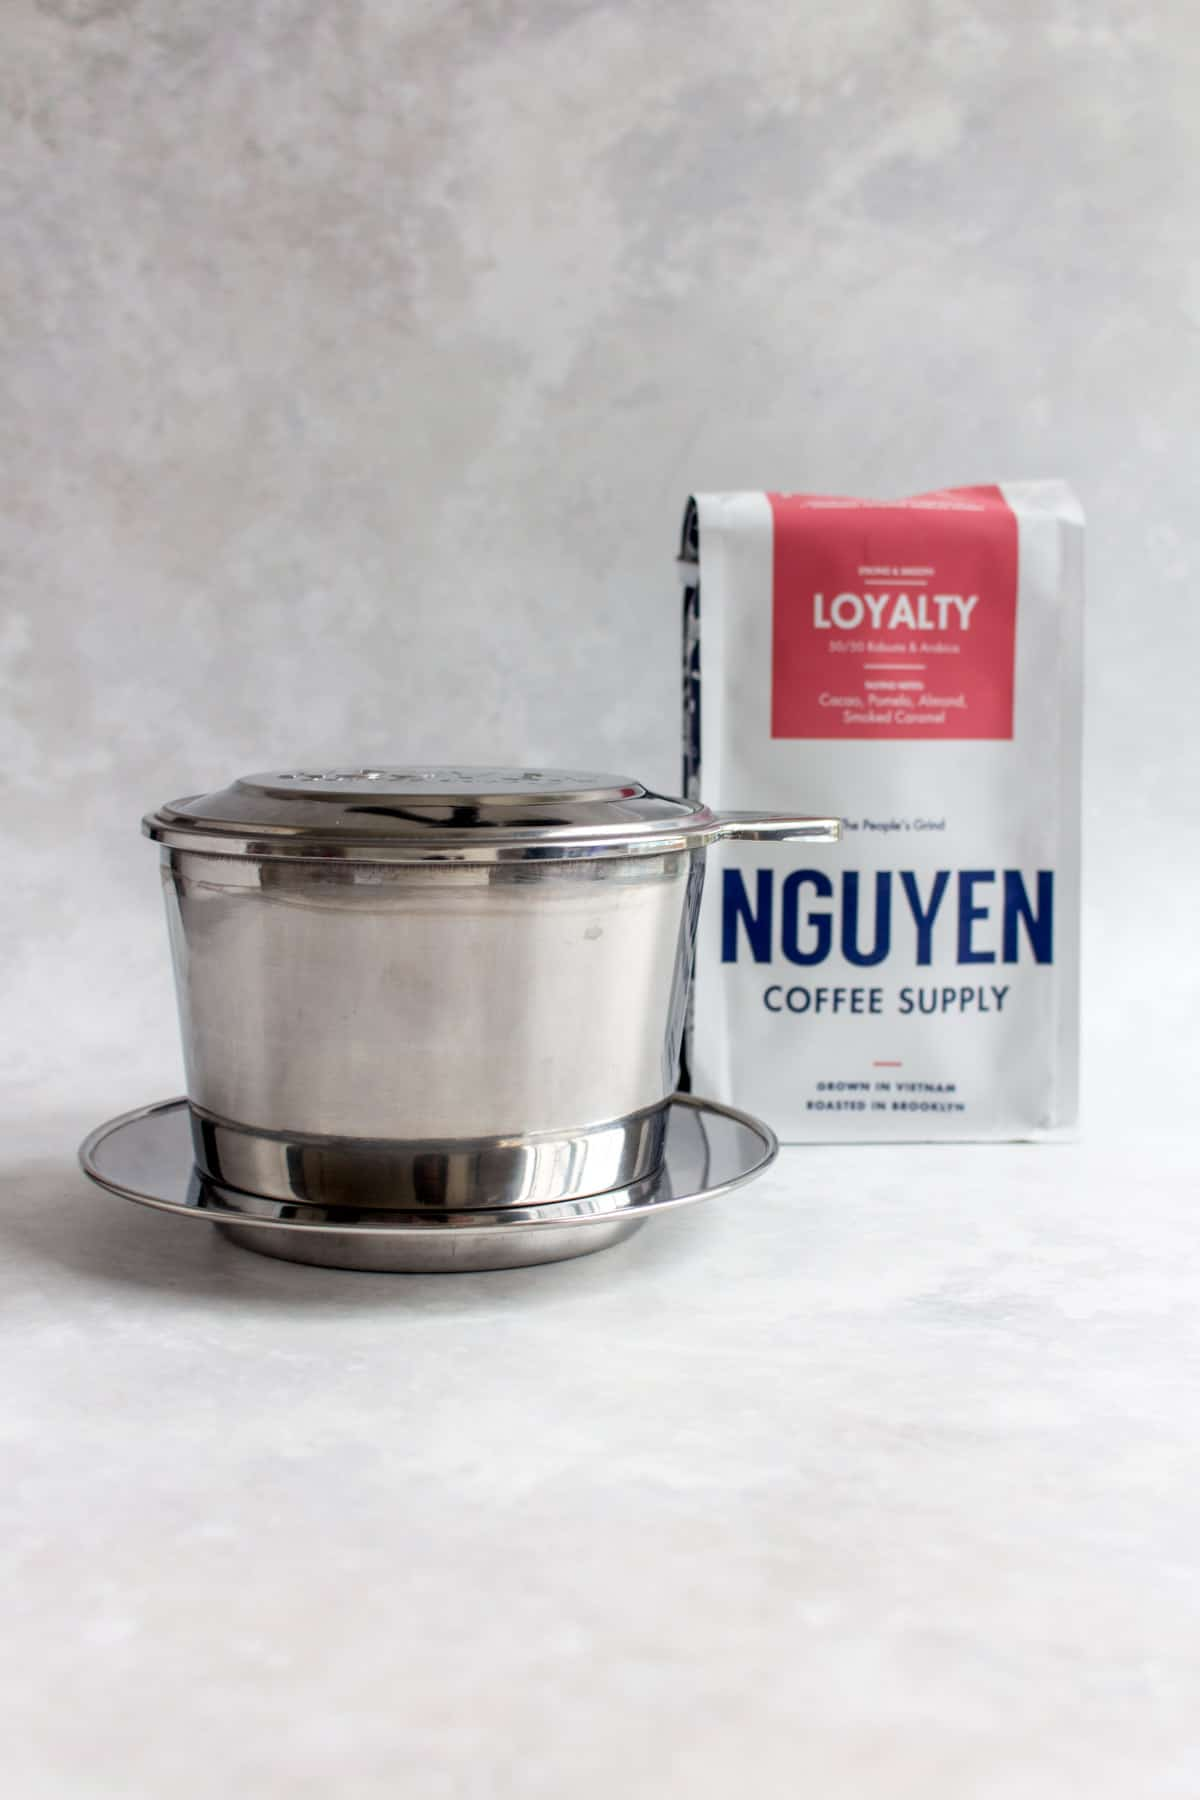 Vietnamese coffee phin with a pack of Nguyen coffee.